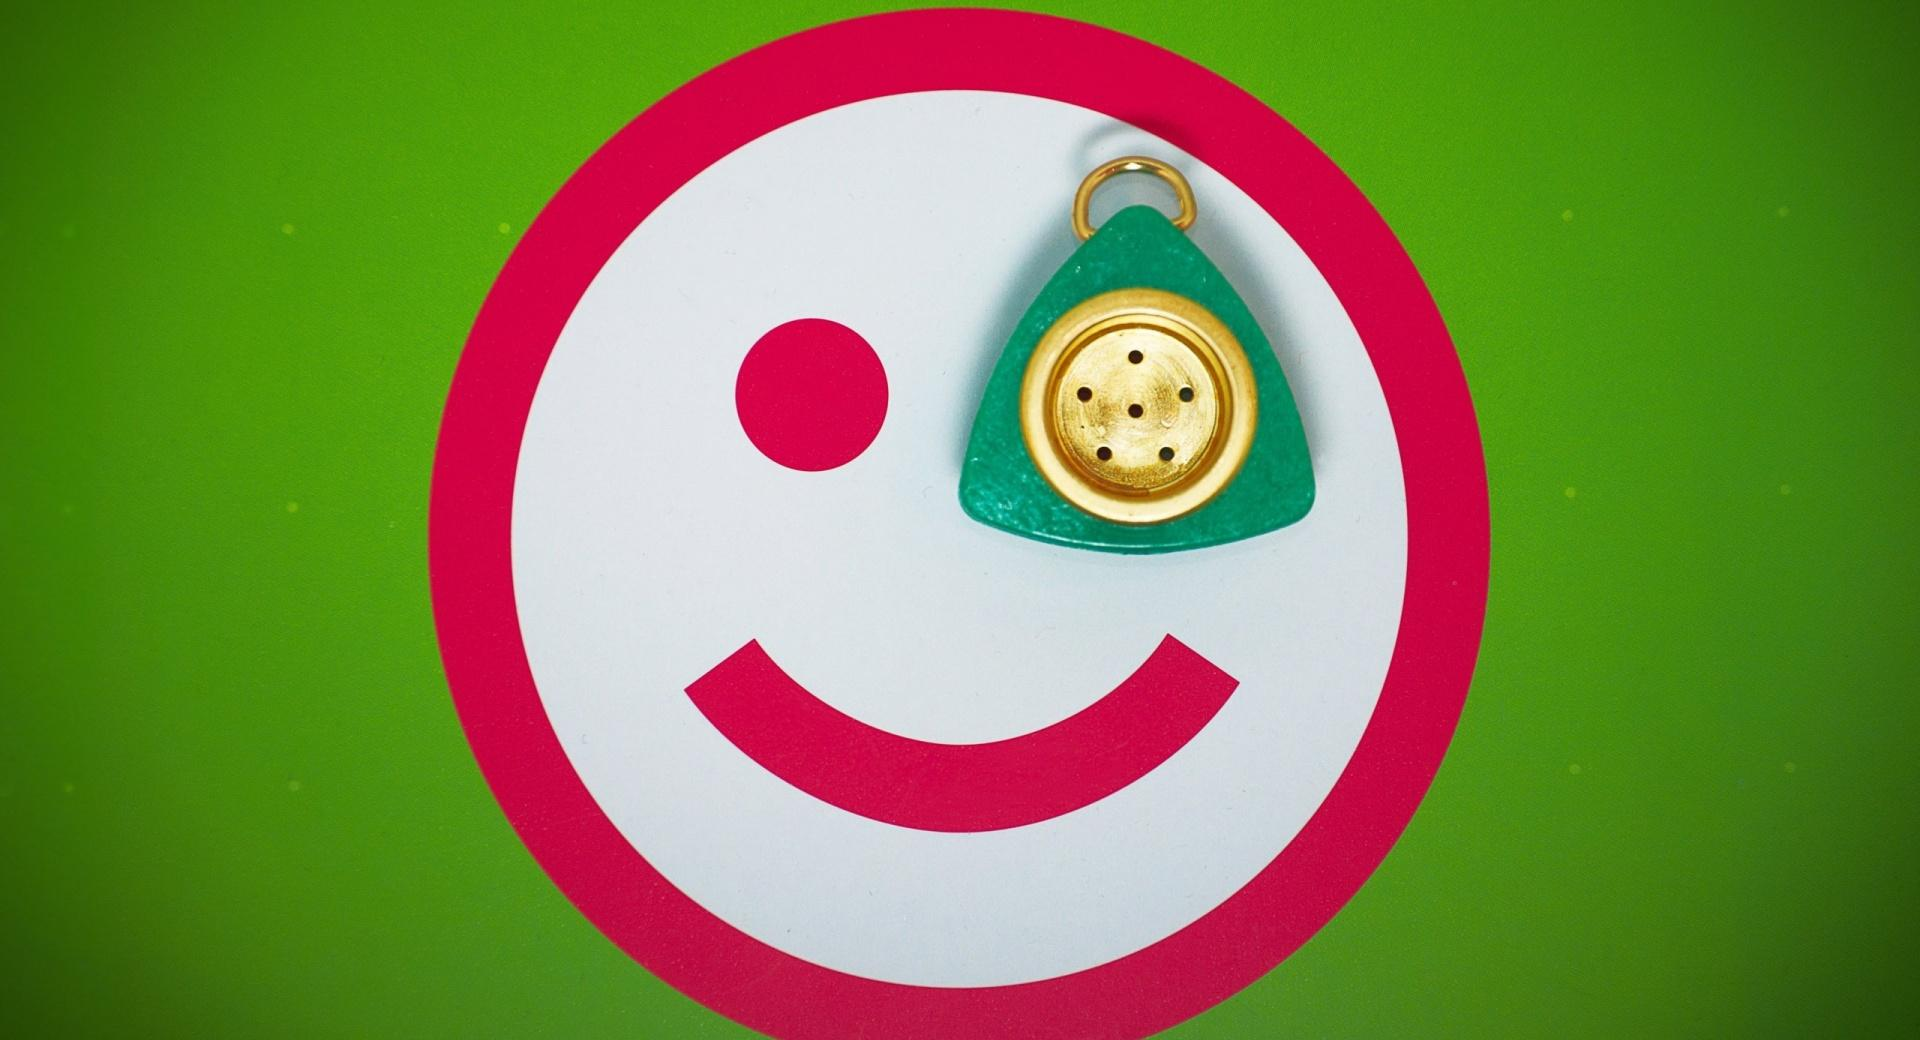 Monocle Smiley wallpapers HD quality